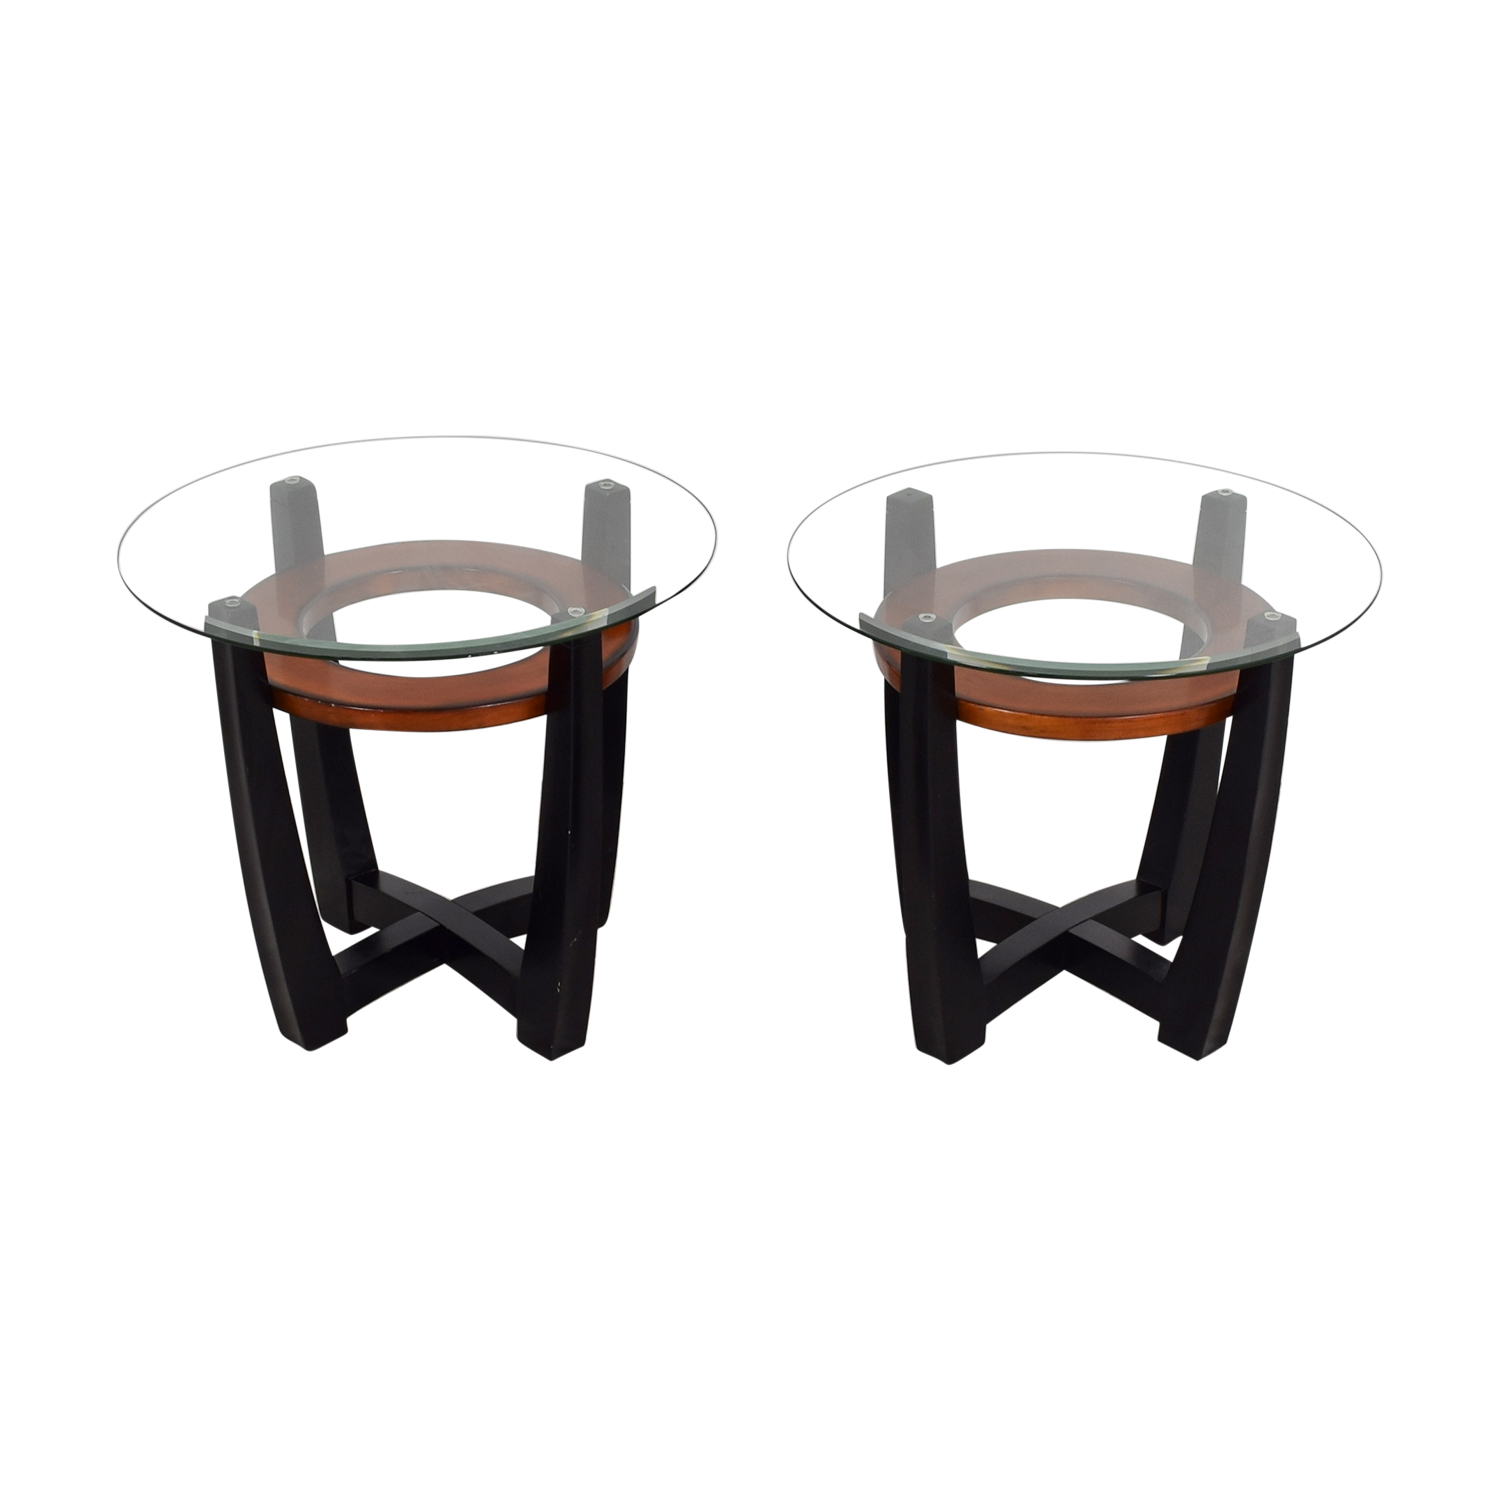 Elation Round Glass and Wood End Tables sale